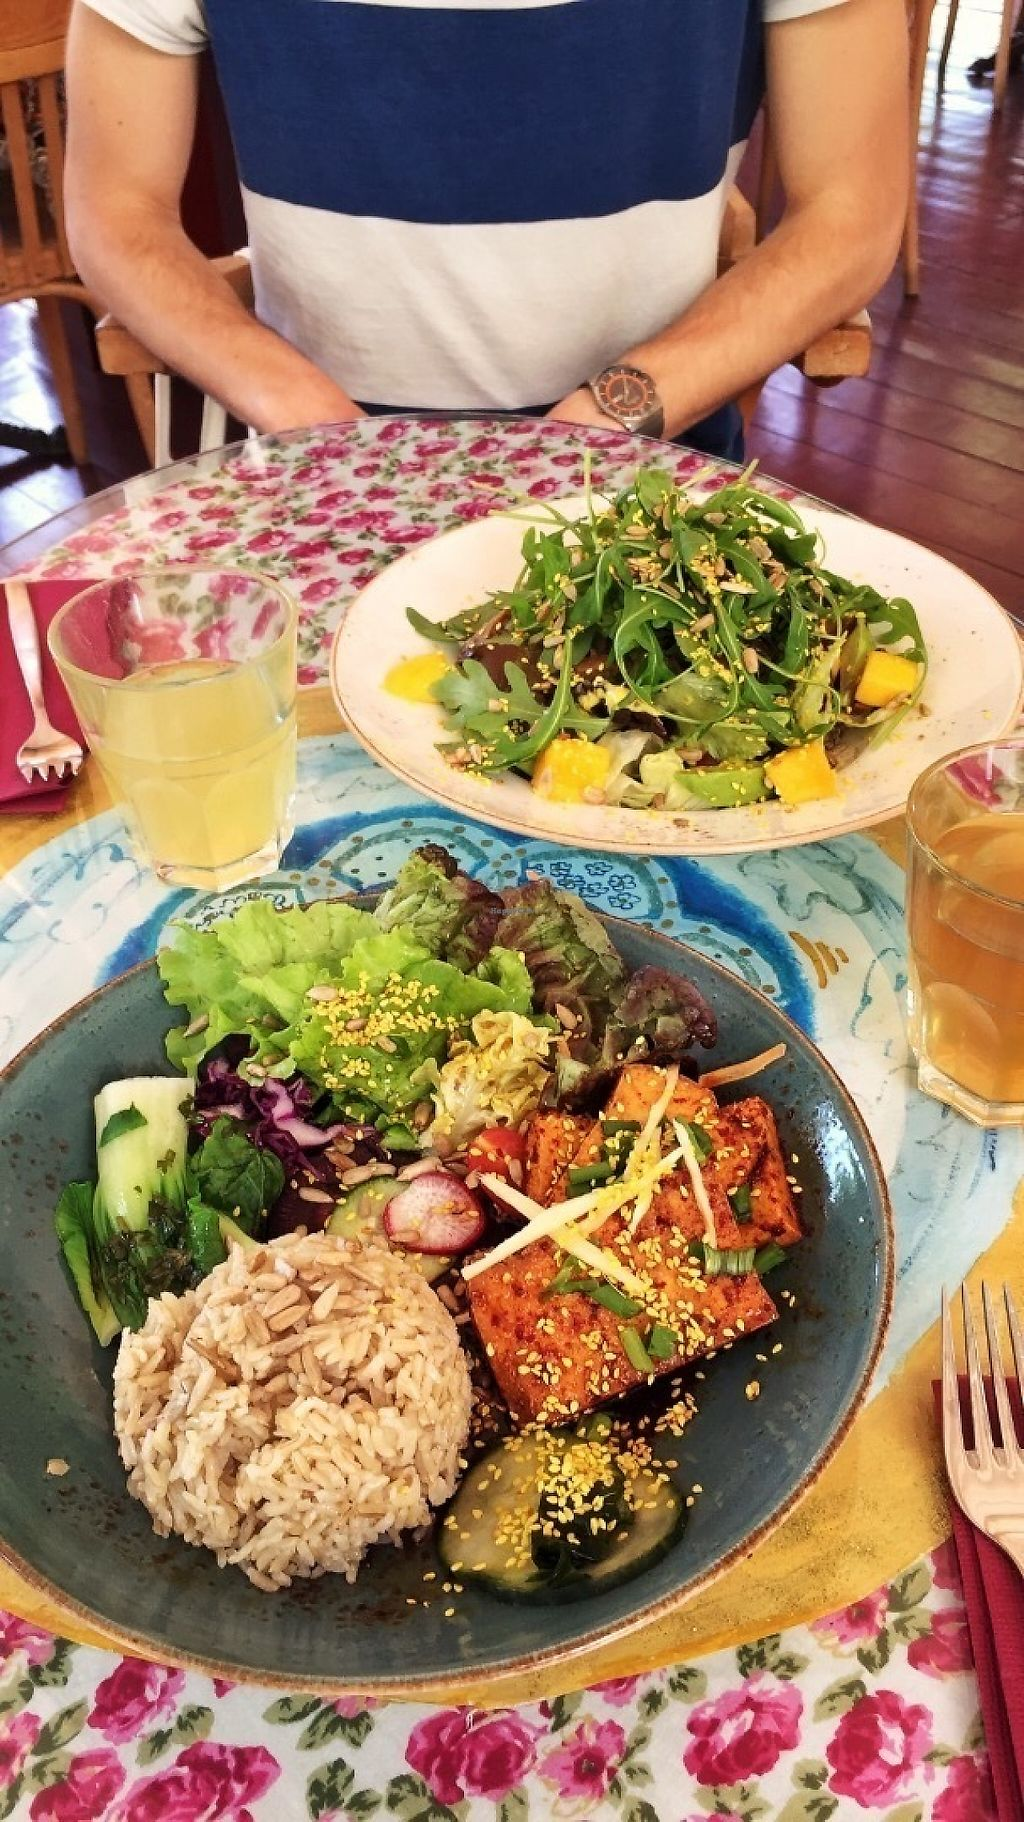 "Photo of PSI  by <a href=""/members/profile/kitchendates"">kitchendates</a> <br/>Korean Tofu Bowl + Ayurvedic Salad <br/> May 14, 2017  - <a href='/contact/abuse/image/3522/258651'>Report</a>"